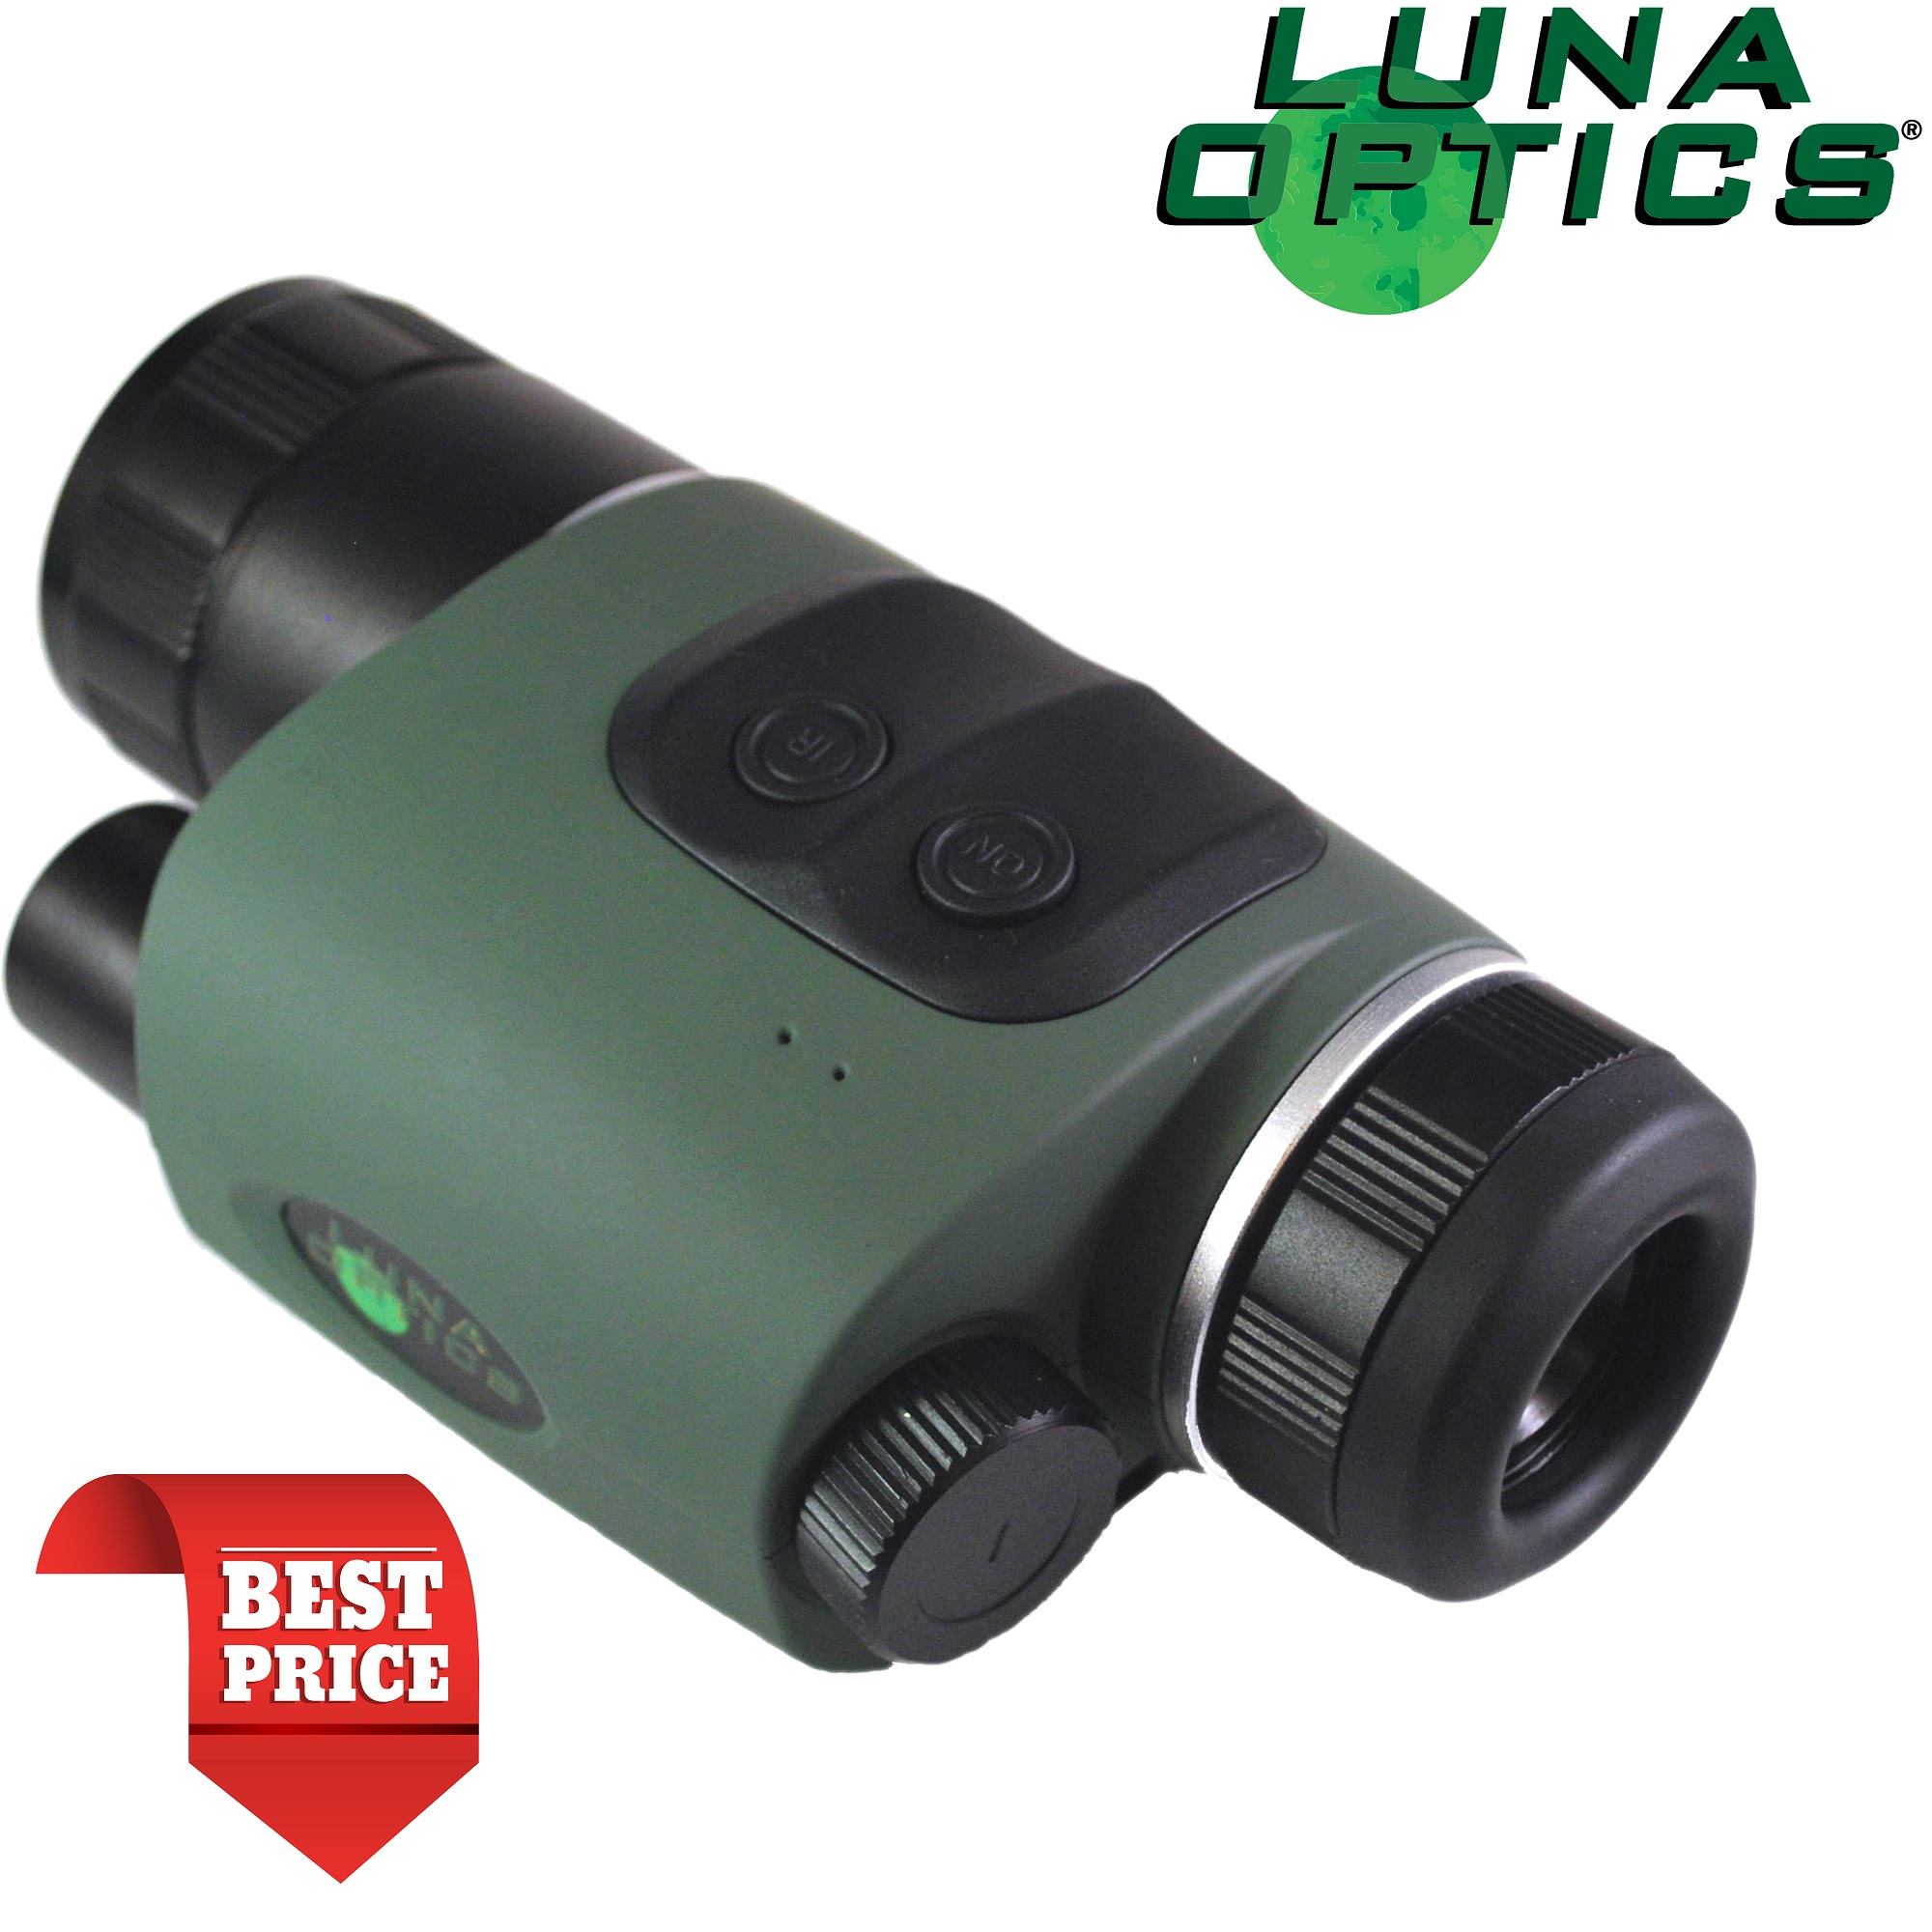 Luna Optics LN-NVM3-HR Gen1 High Resolution Night Vision Monocular